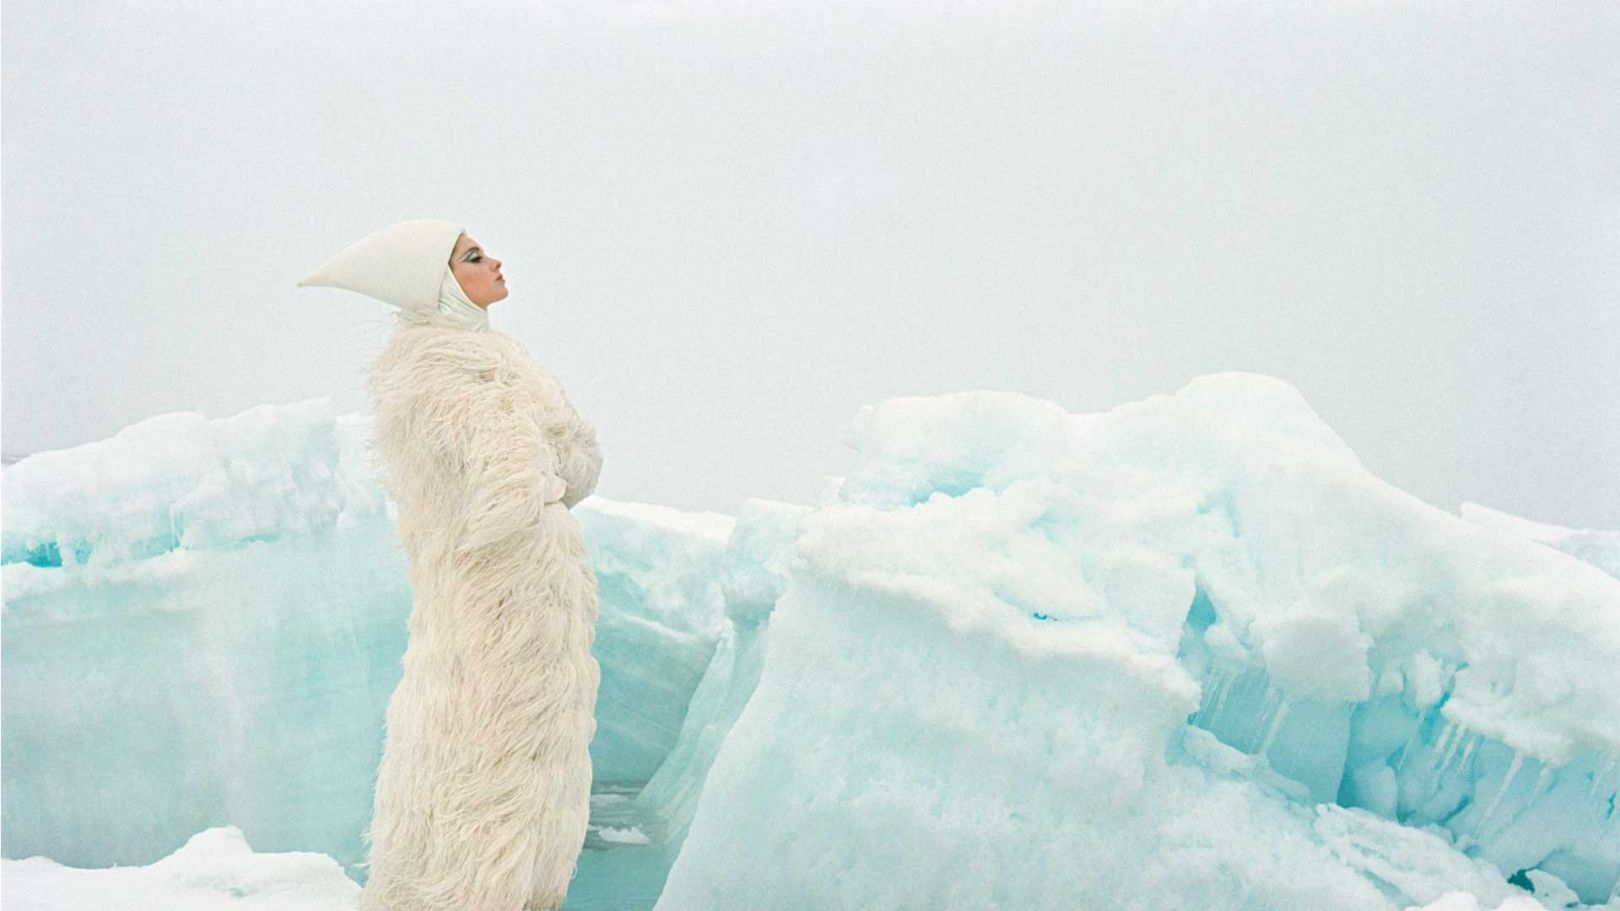 An icy fashion shoot by John Cowan for Vogue, November 1964, reproduced in Expedition: Fashion from the Extreme (Thames & Hudson) by Patricia Mears et al, which accompanies the exhibition at The Museum at FIT in New York